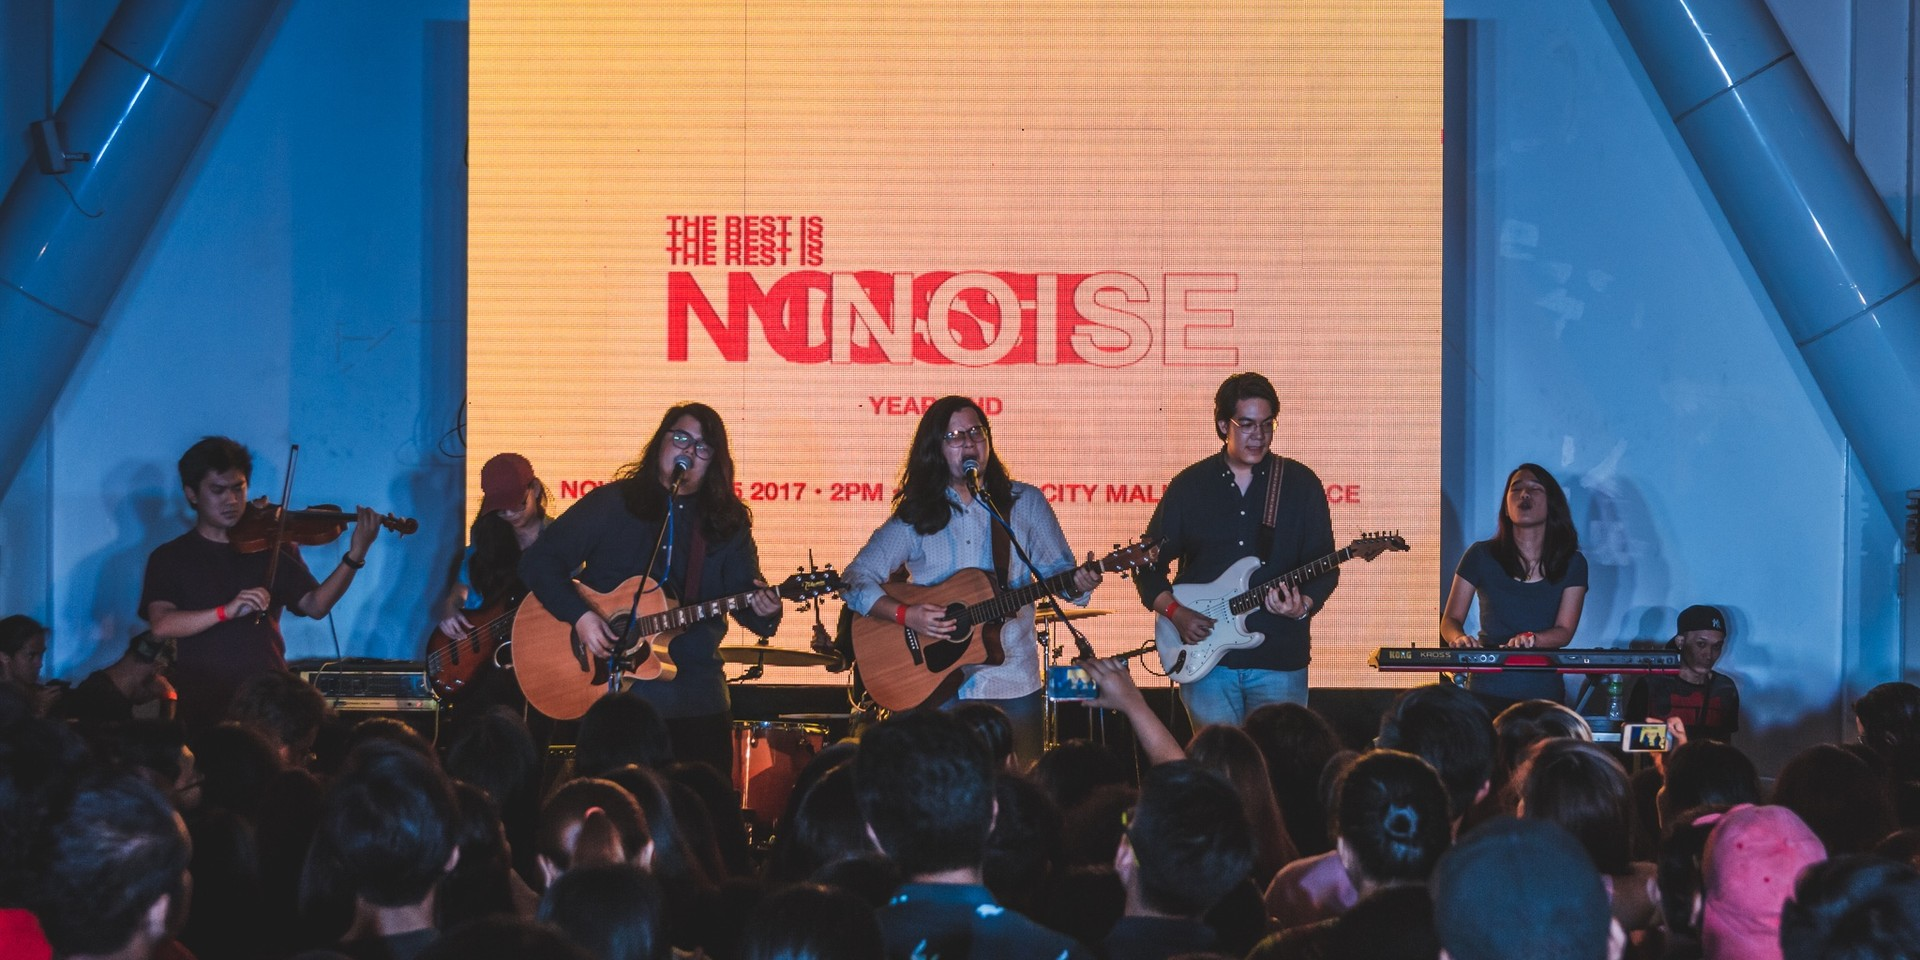 Music and advocacy take center stage at The Rest Is Noise Year End Gig